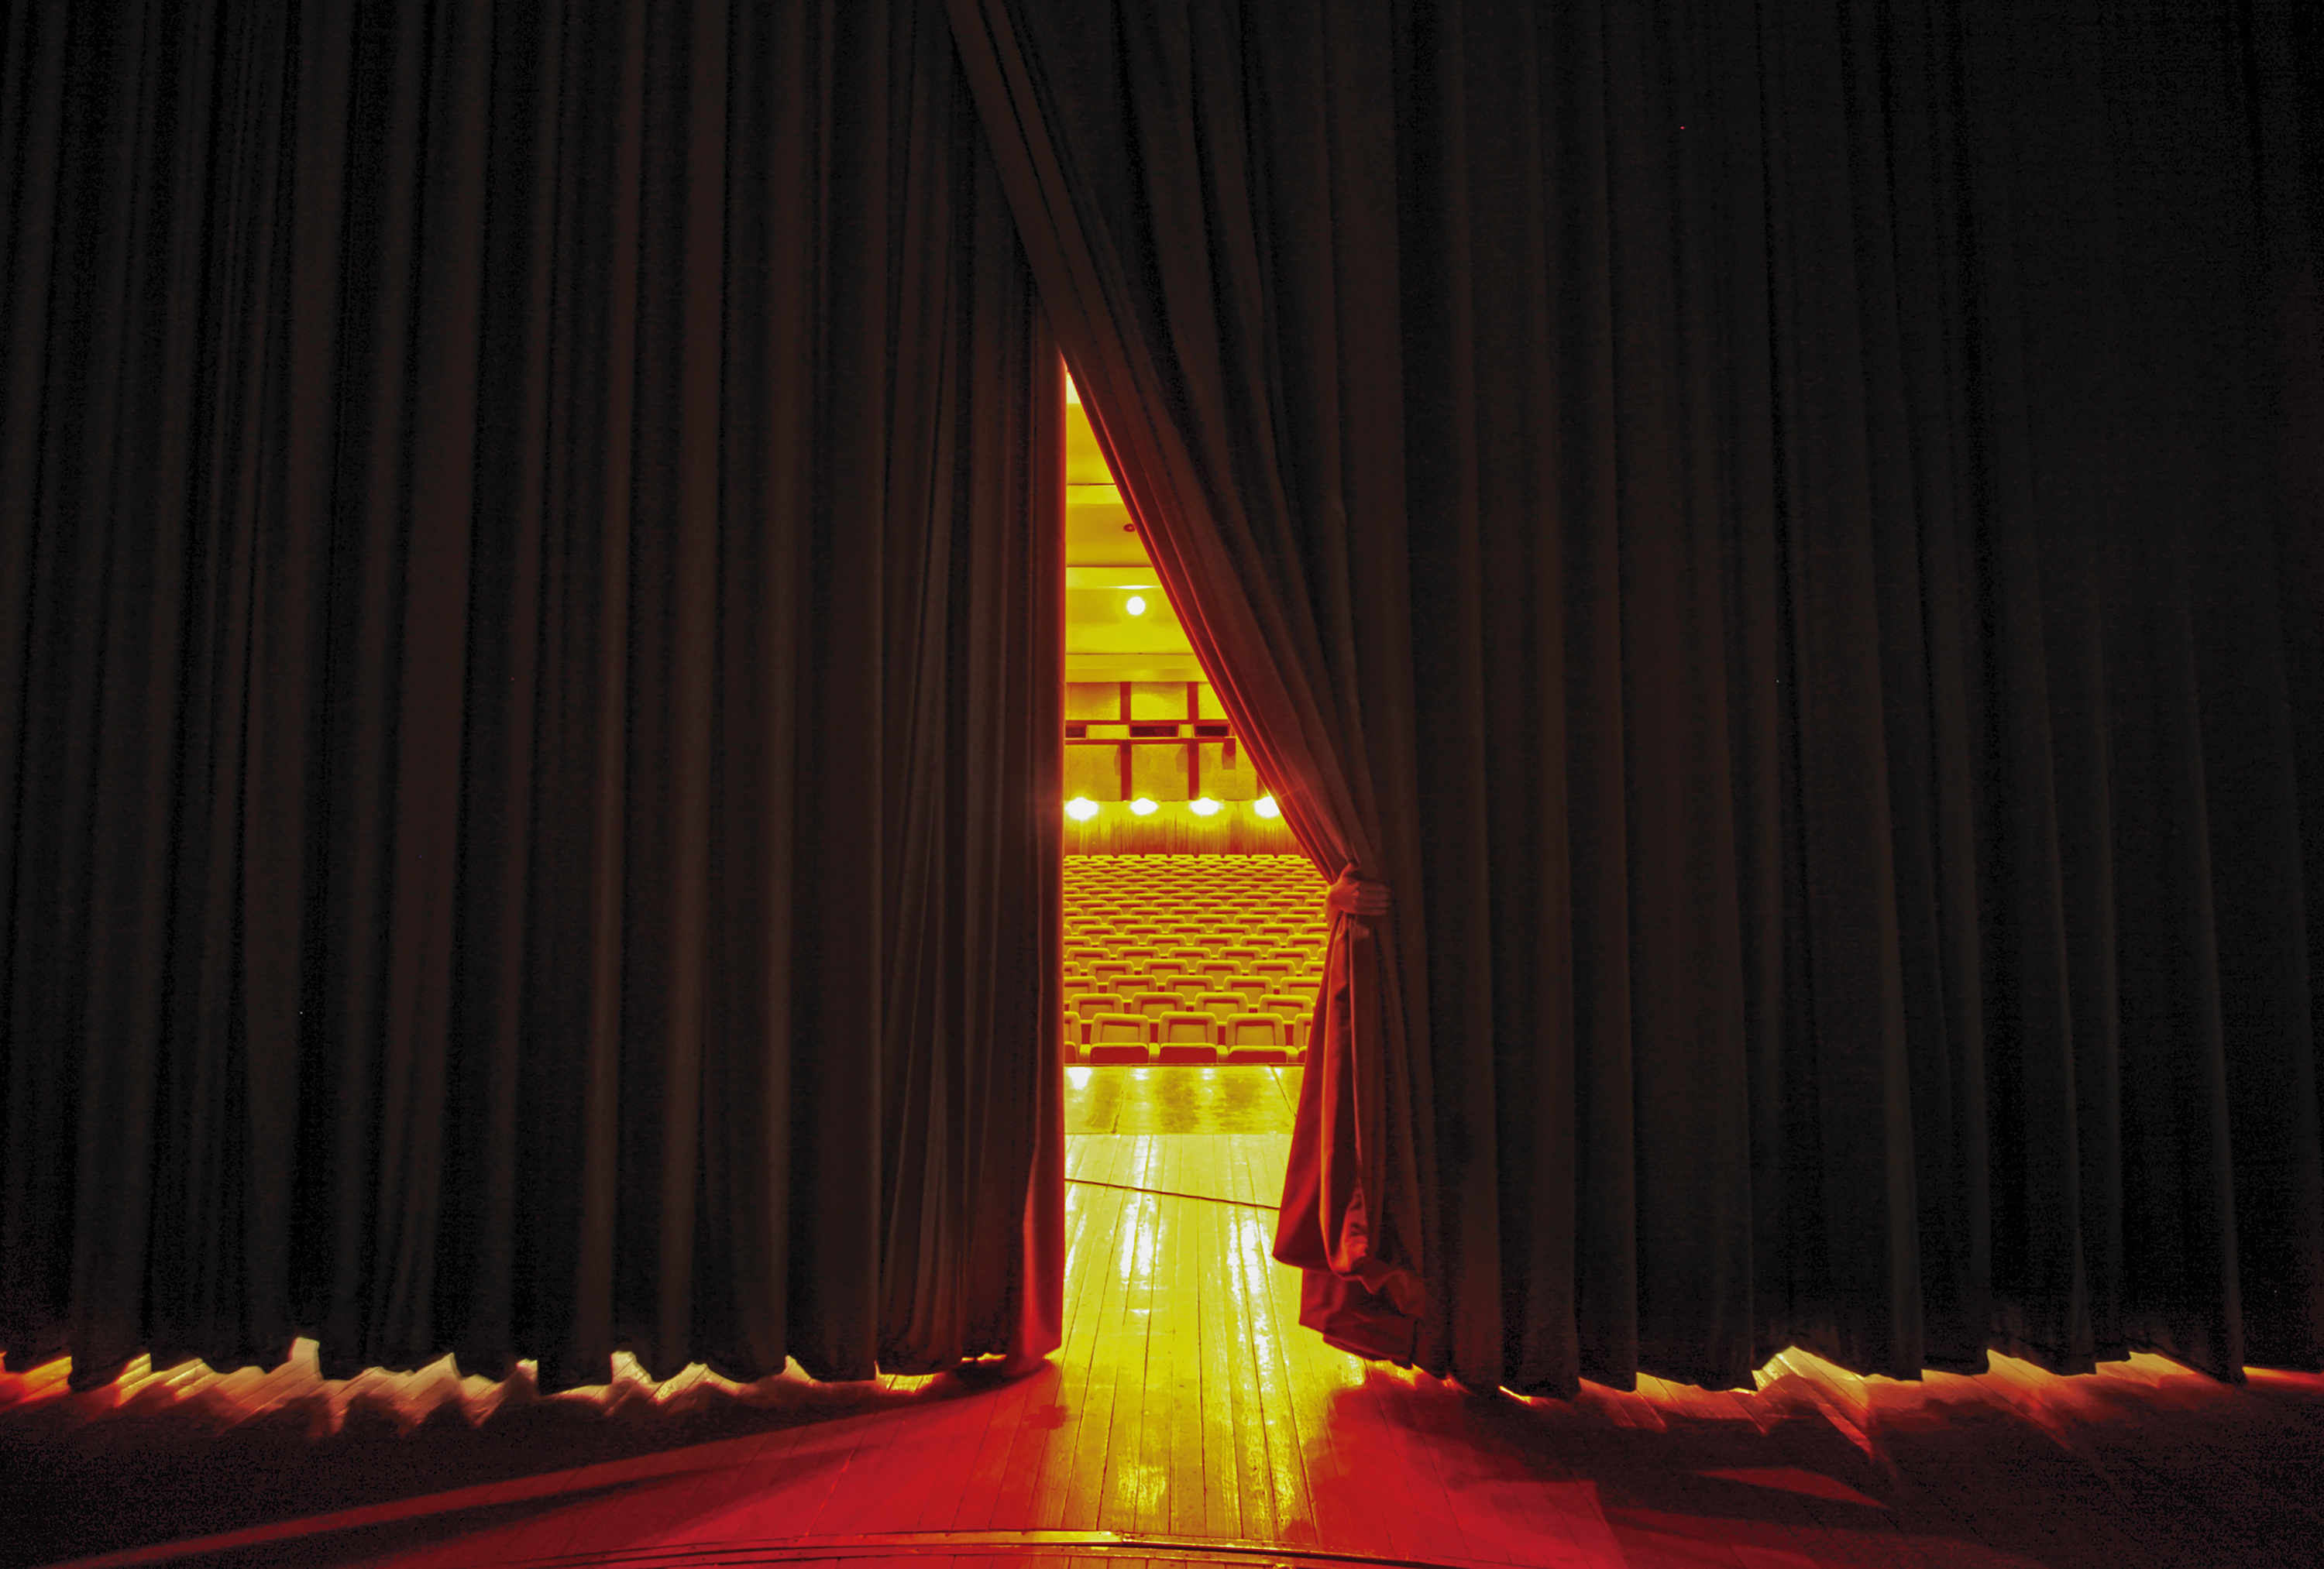 Theater seats through curtains